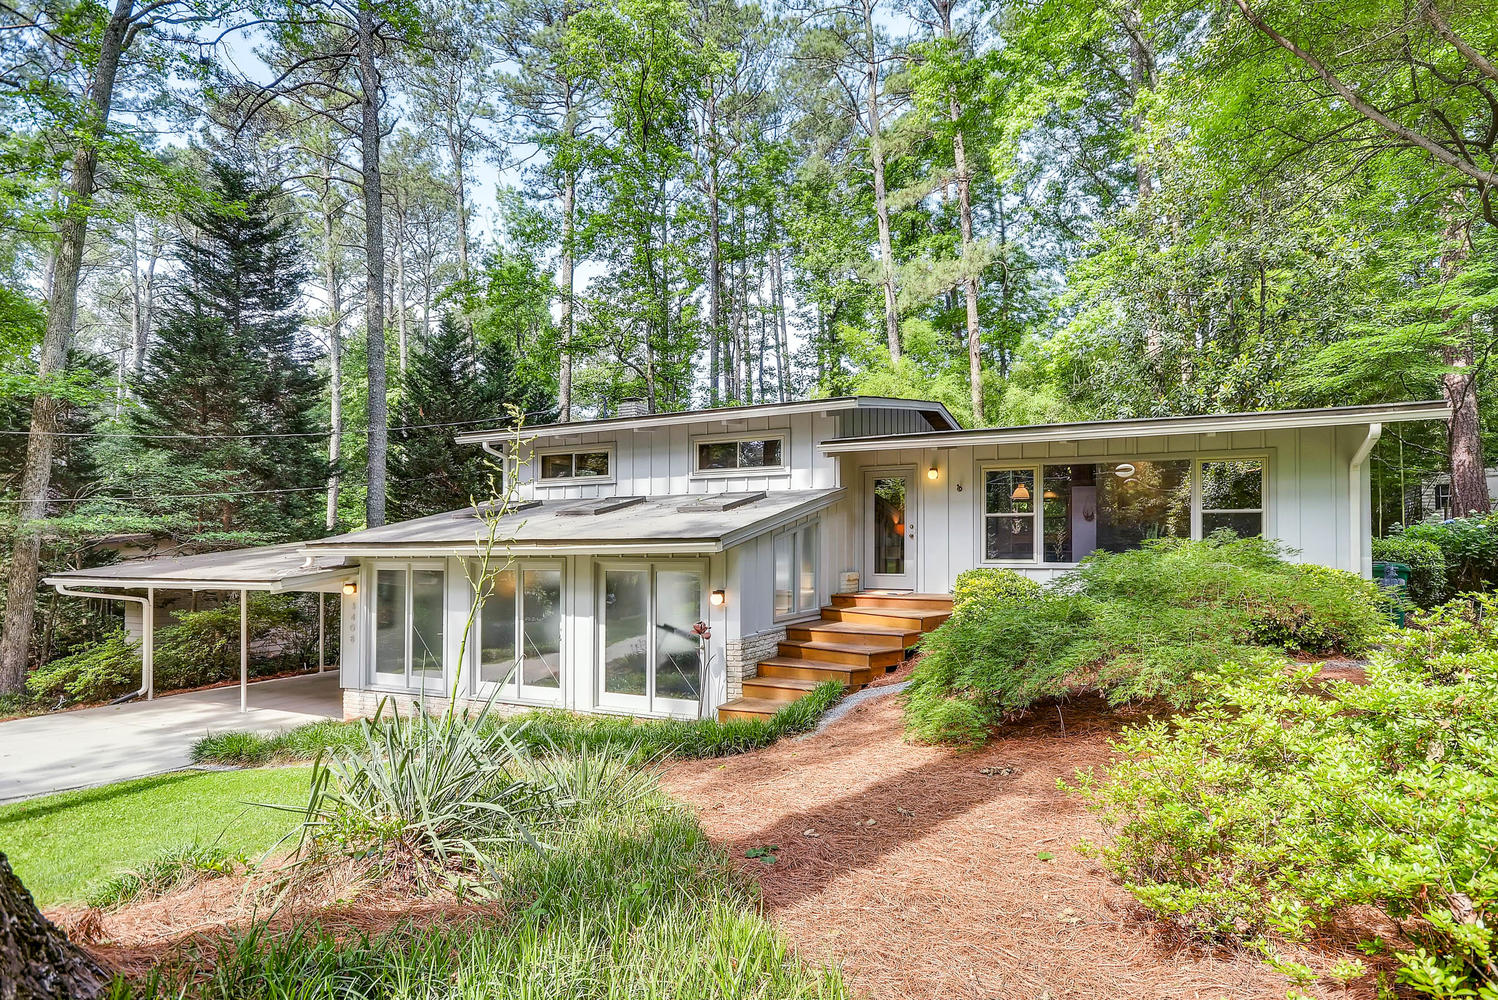 Atlanta mid century modern homes for sale archives New modern houses for sale